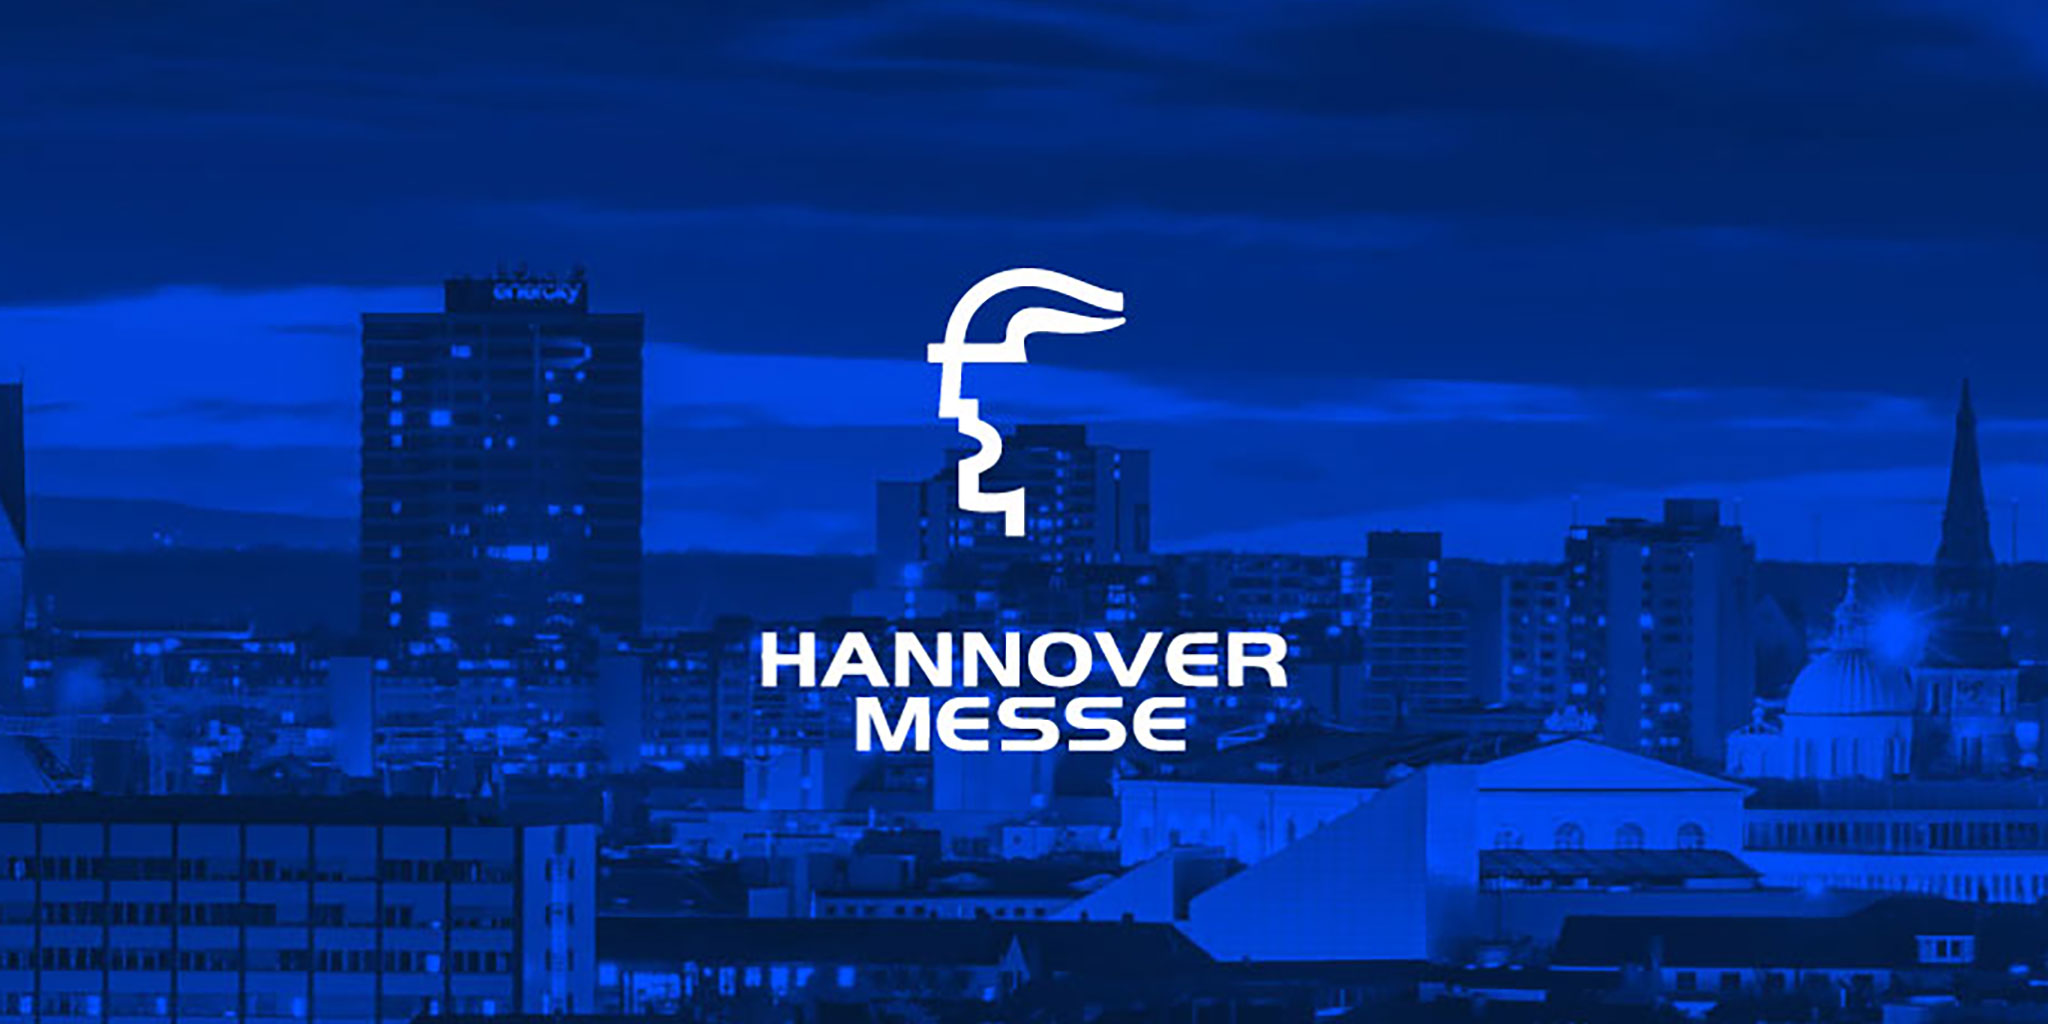 hannover19-blog-feature